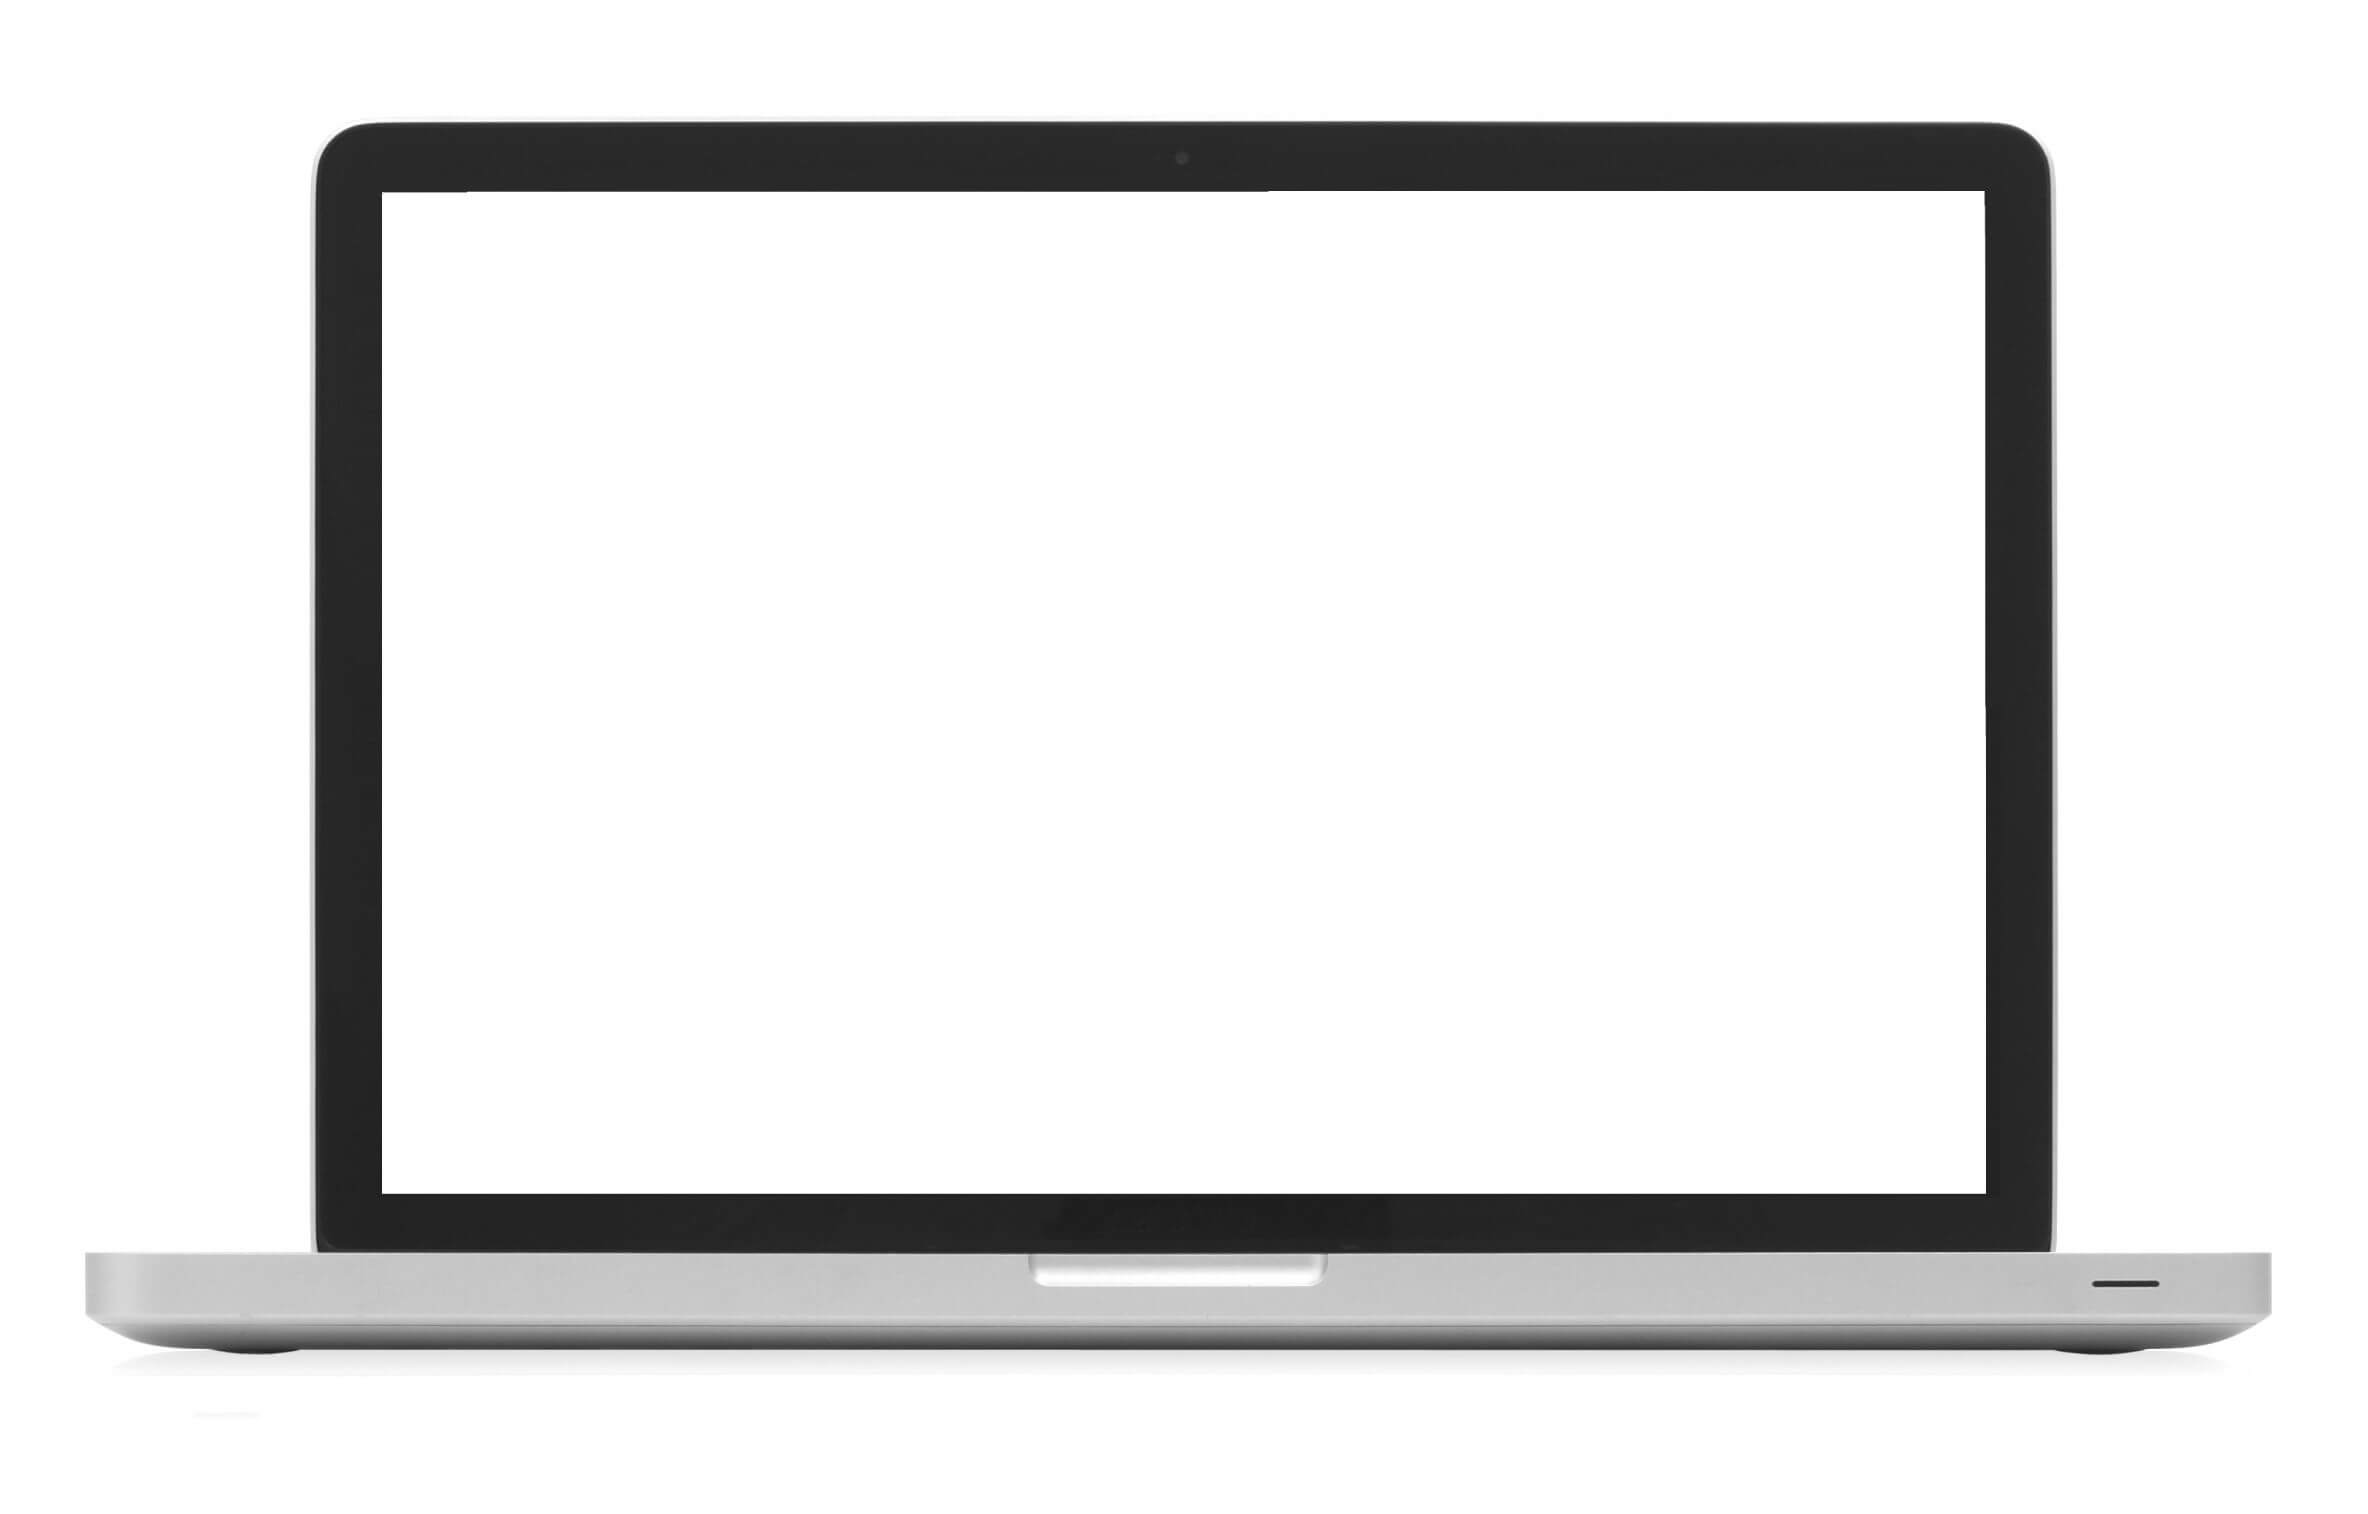 Mbp Cue Card Blank Template - Imgflip in Cue Card Template